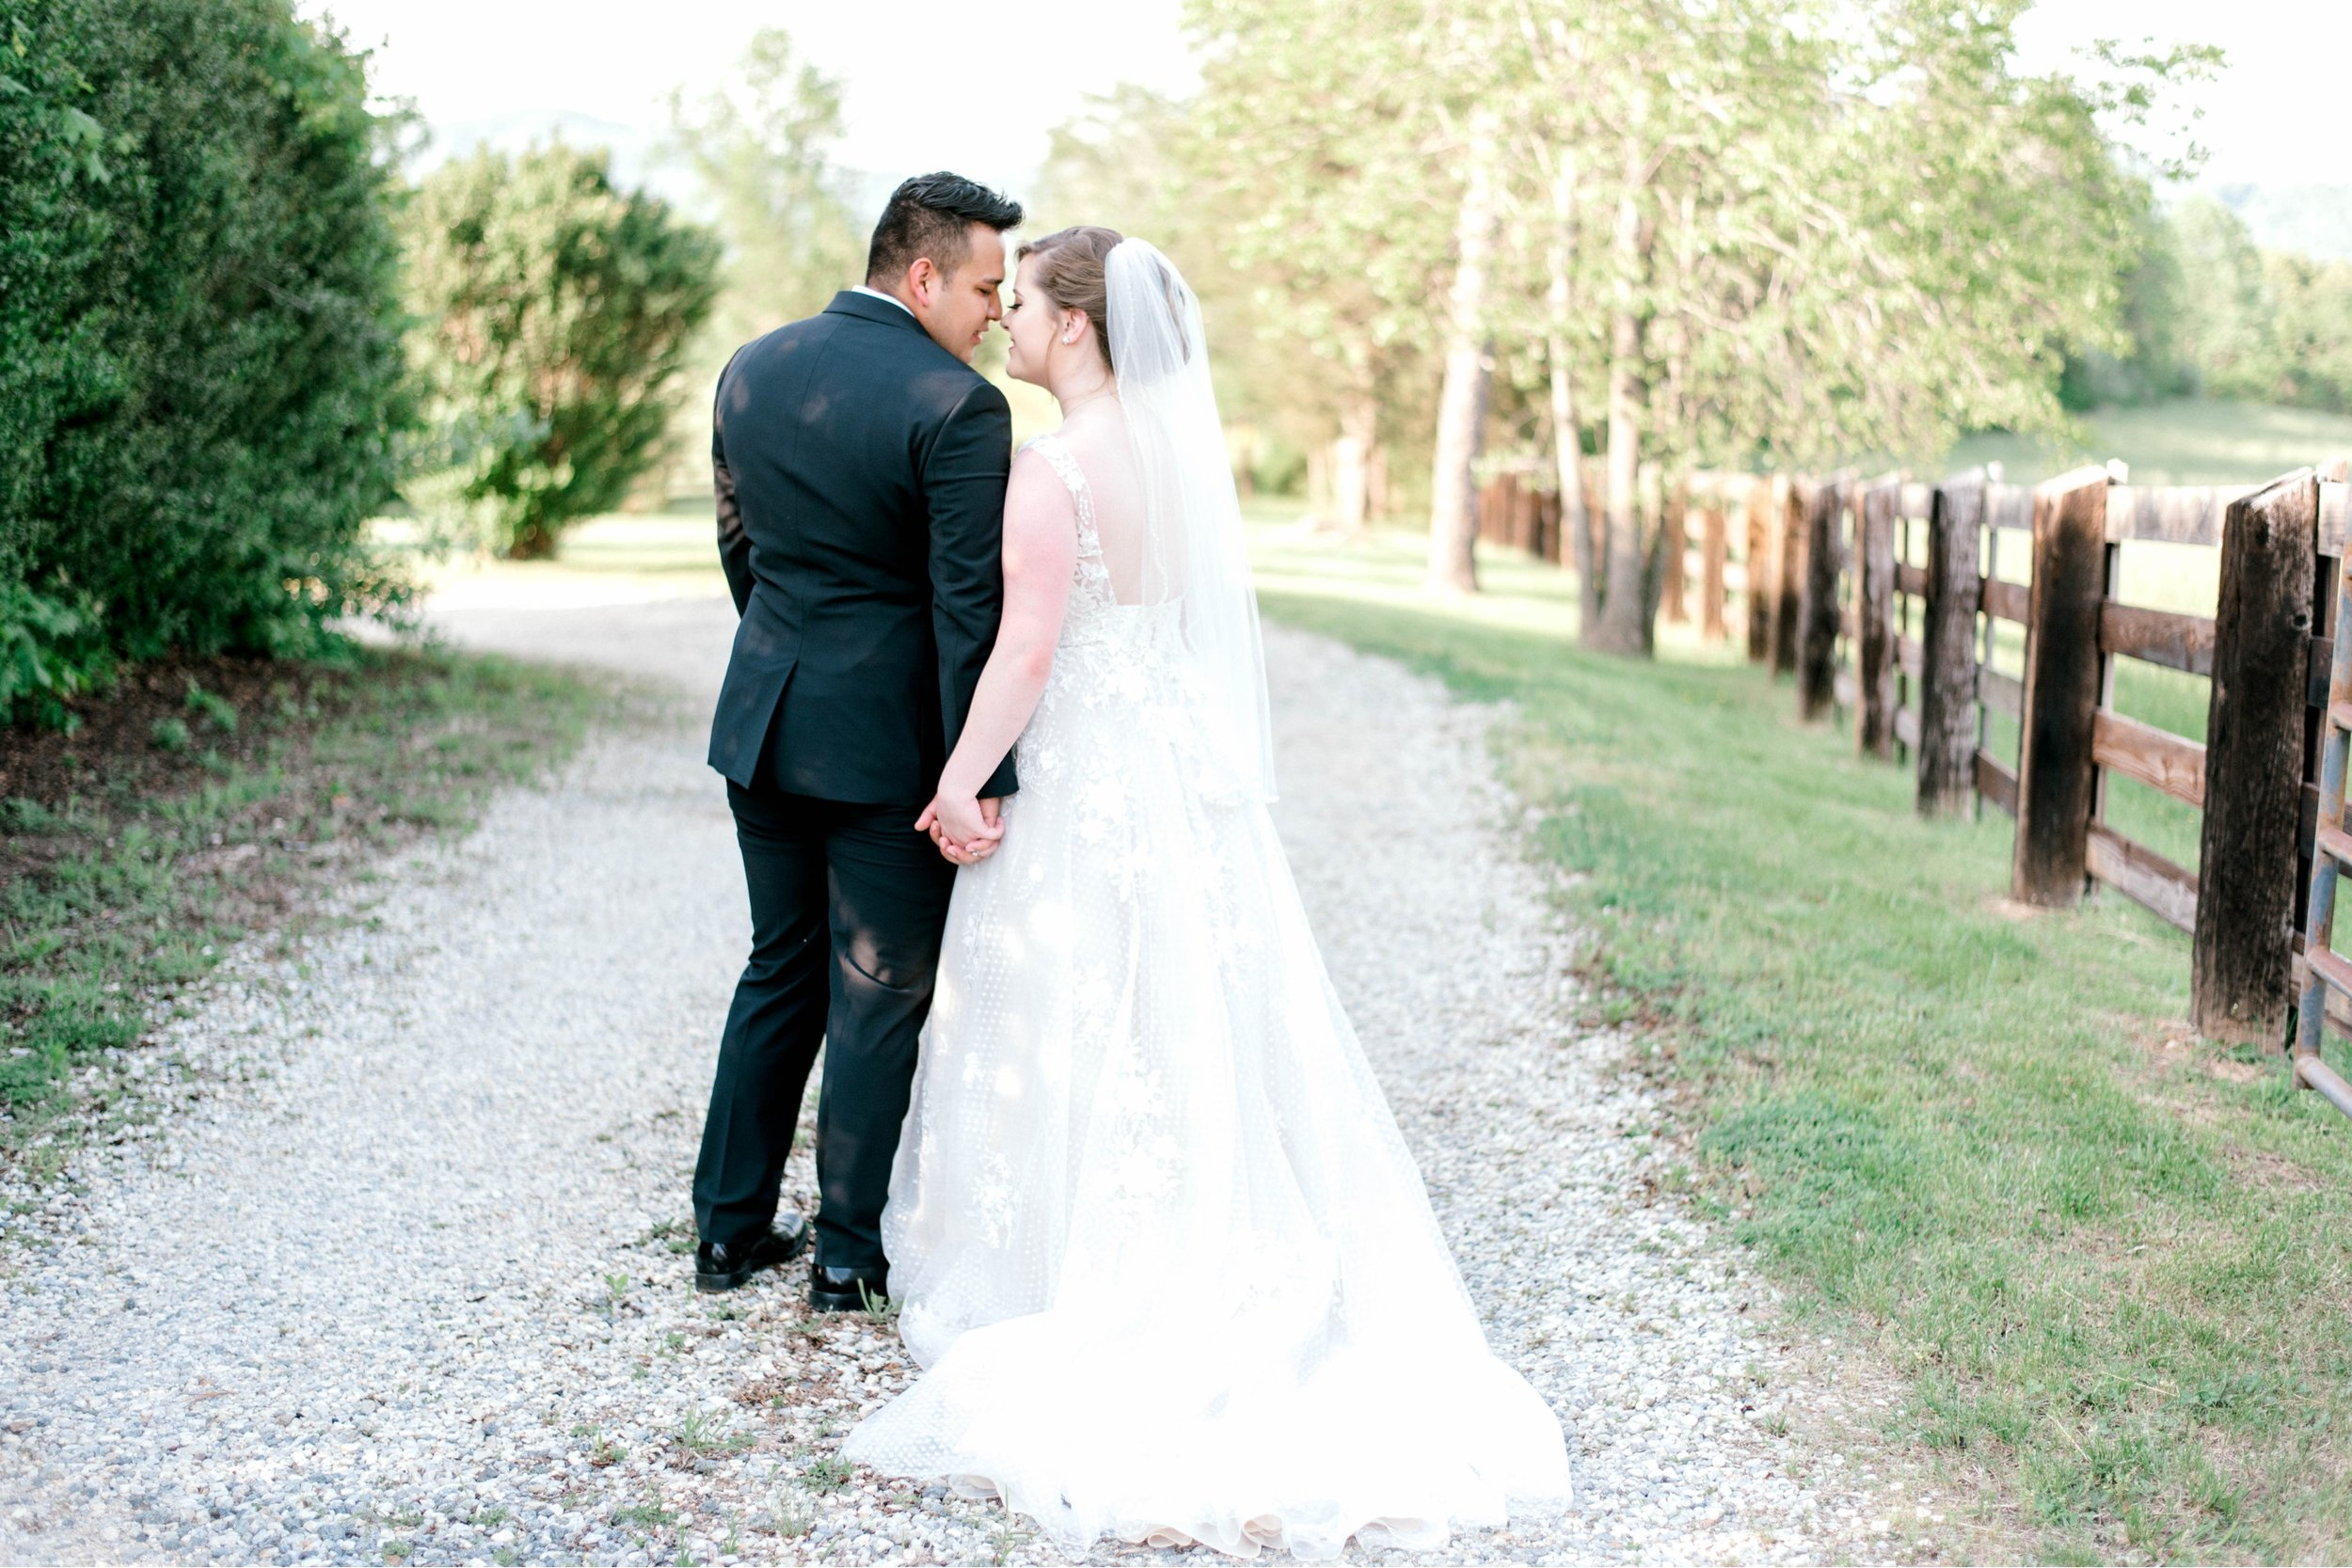 Jillian+Abi_OakridgeEstate_Wedding_VirginiaWeddingPhotographer_SpringWedding 20.jpg